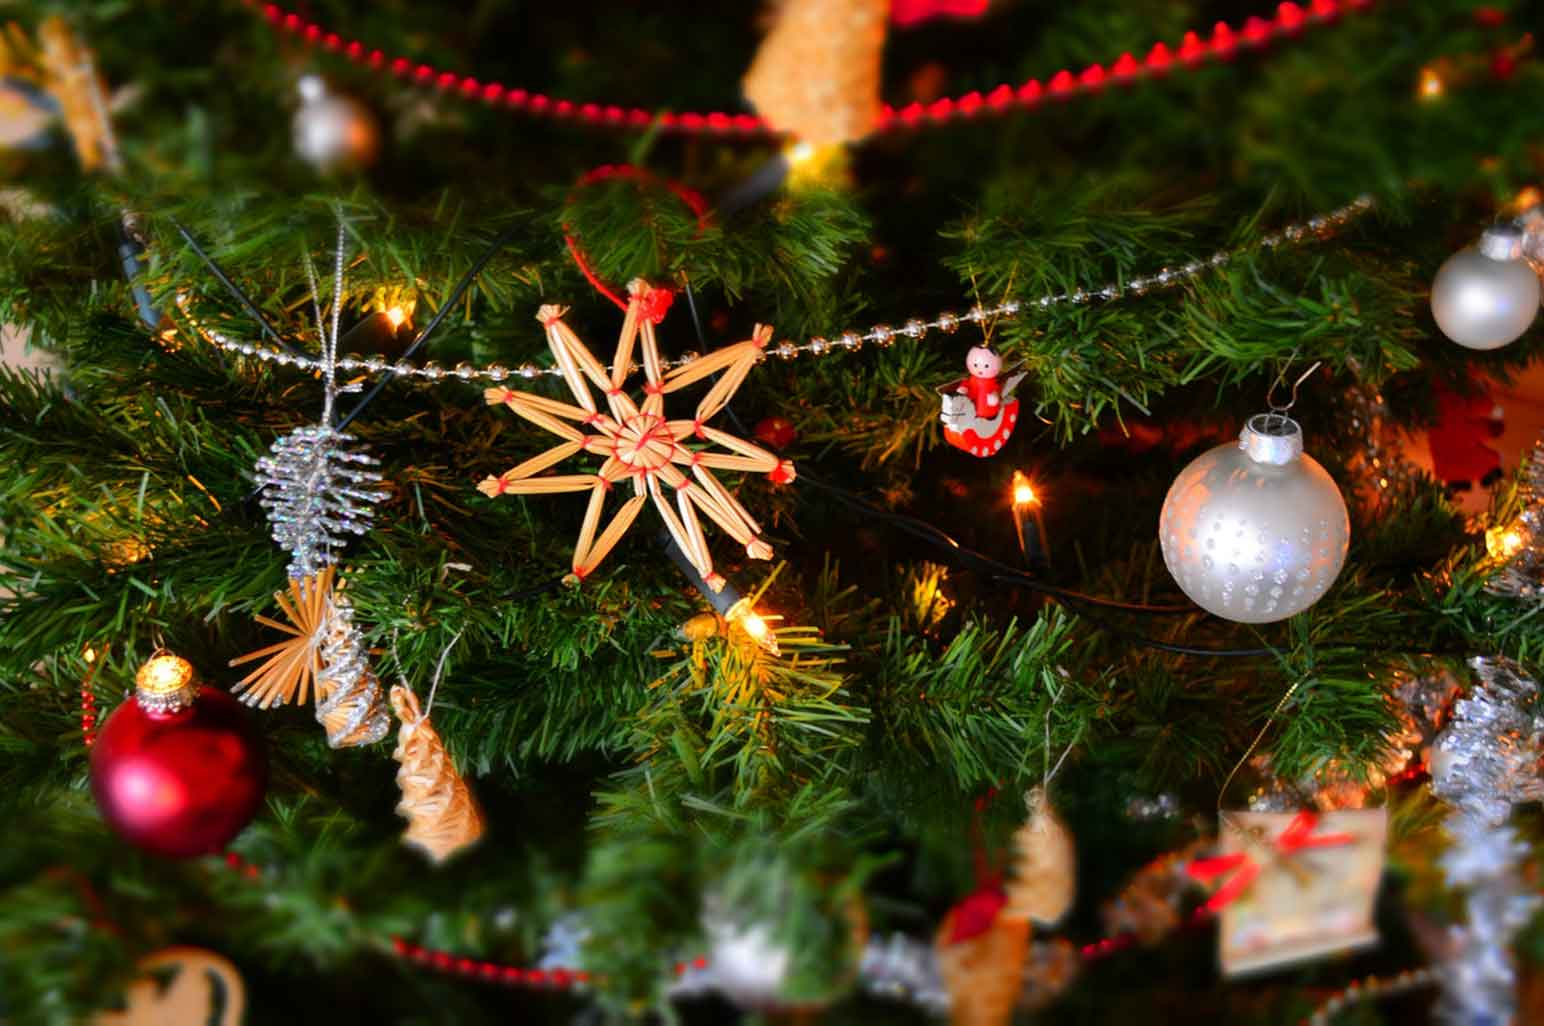 Staying Active and Mindful During the Holiday Season